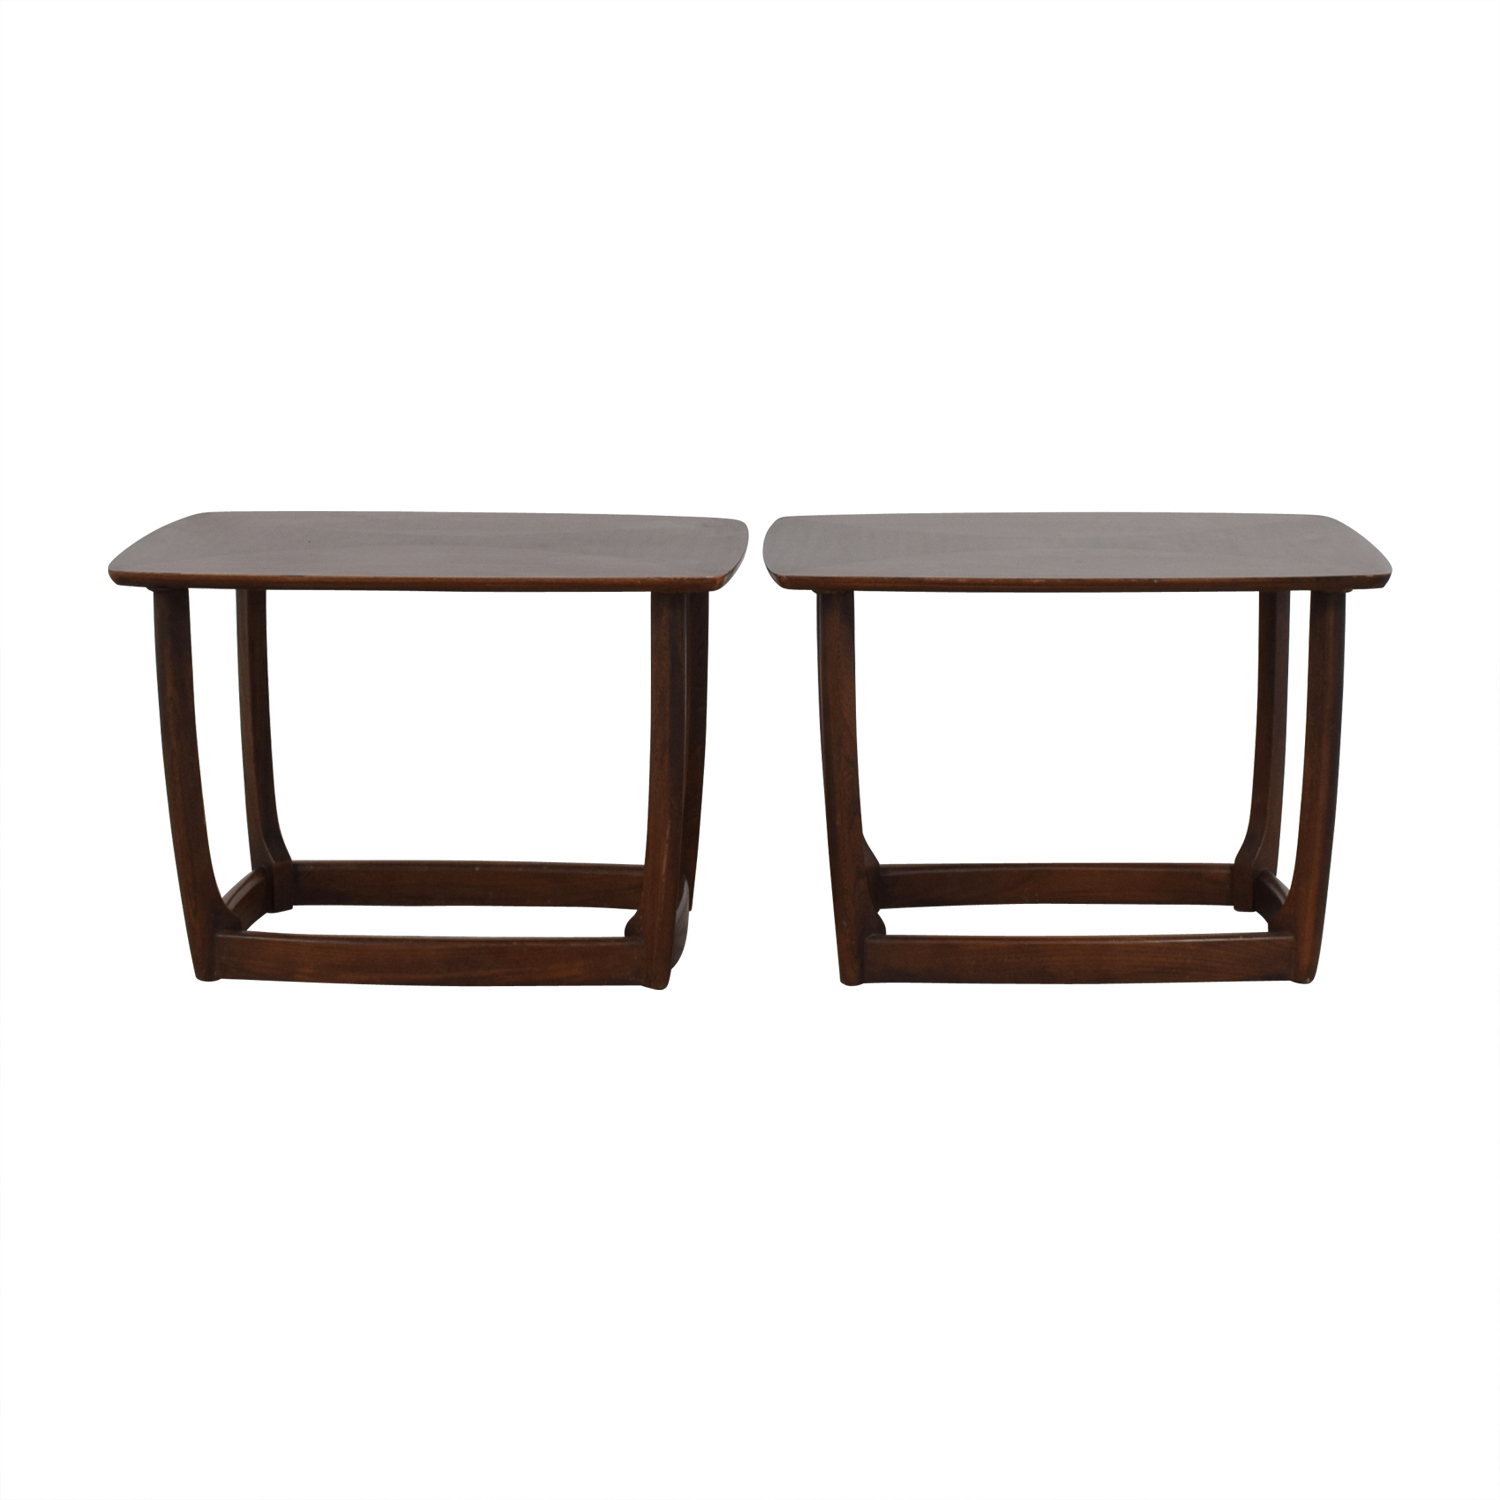 Mid-Century Modern End Table dimensions